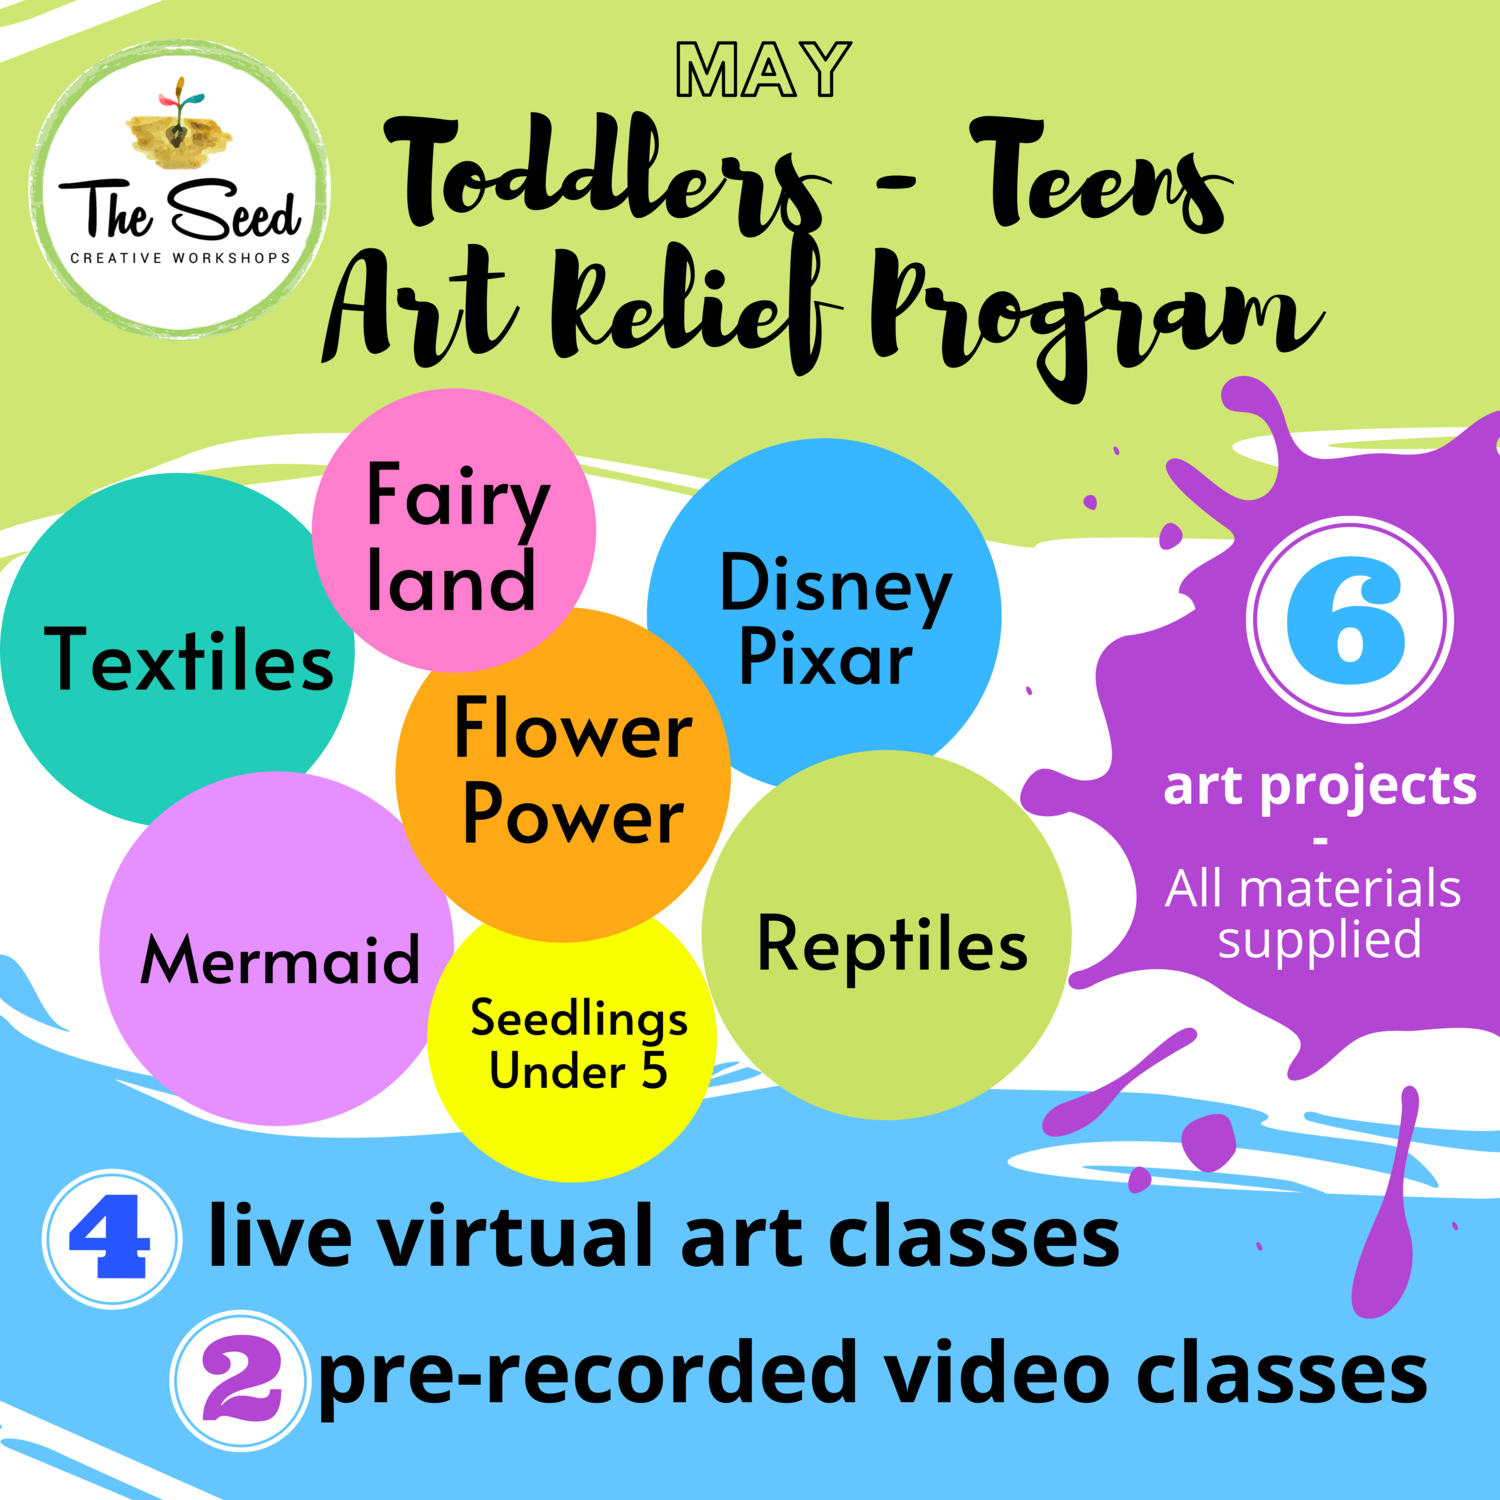 Toddlers - Teens Art Relief Program MAY 2020